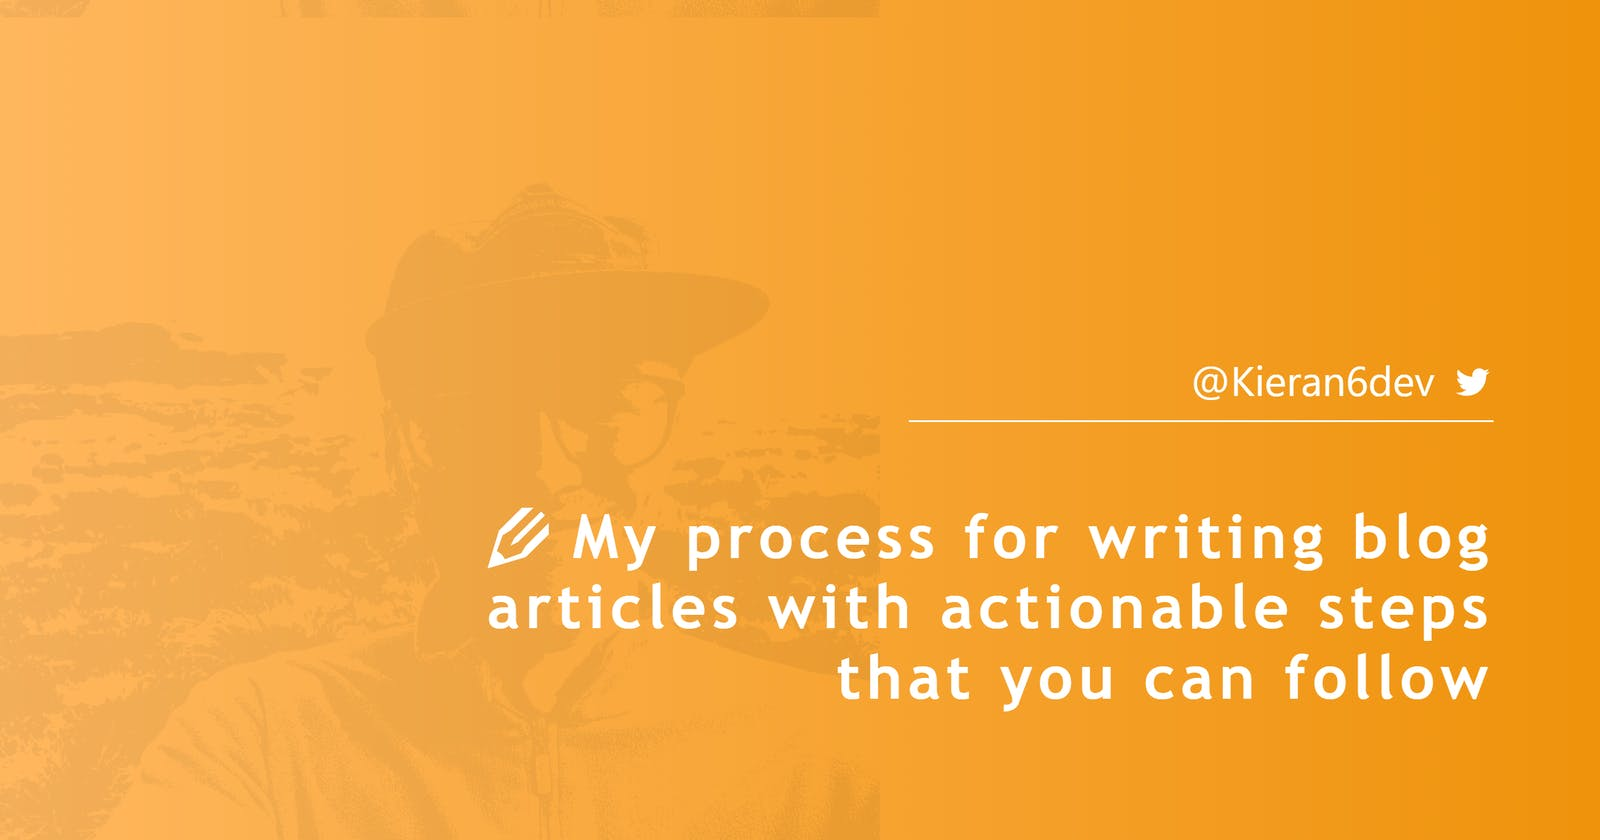 My process for writing blog articles with actionable steps you can follow